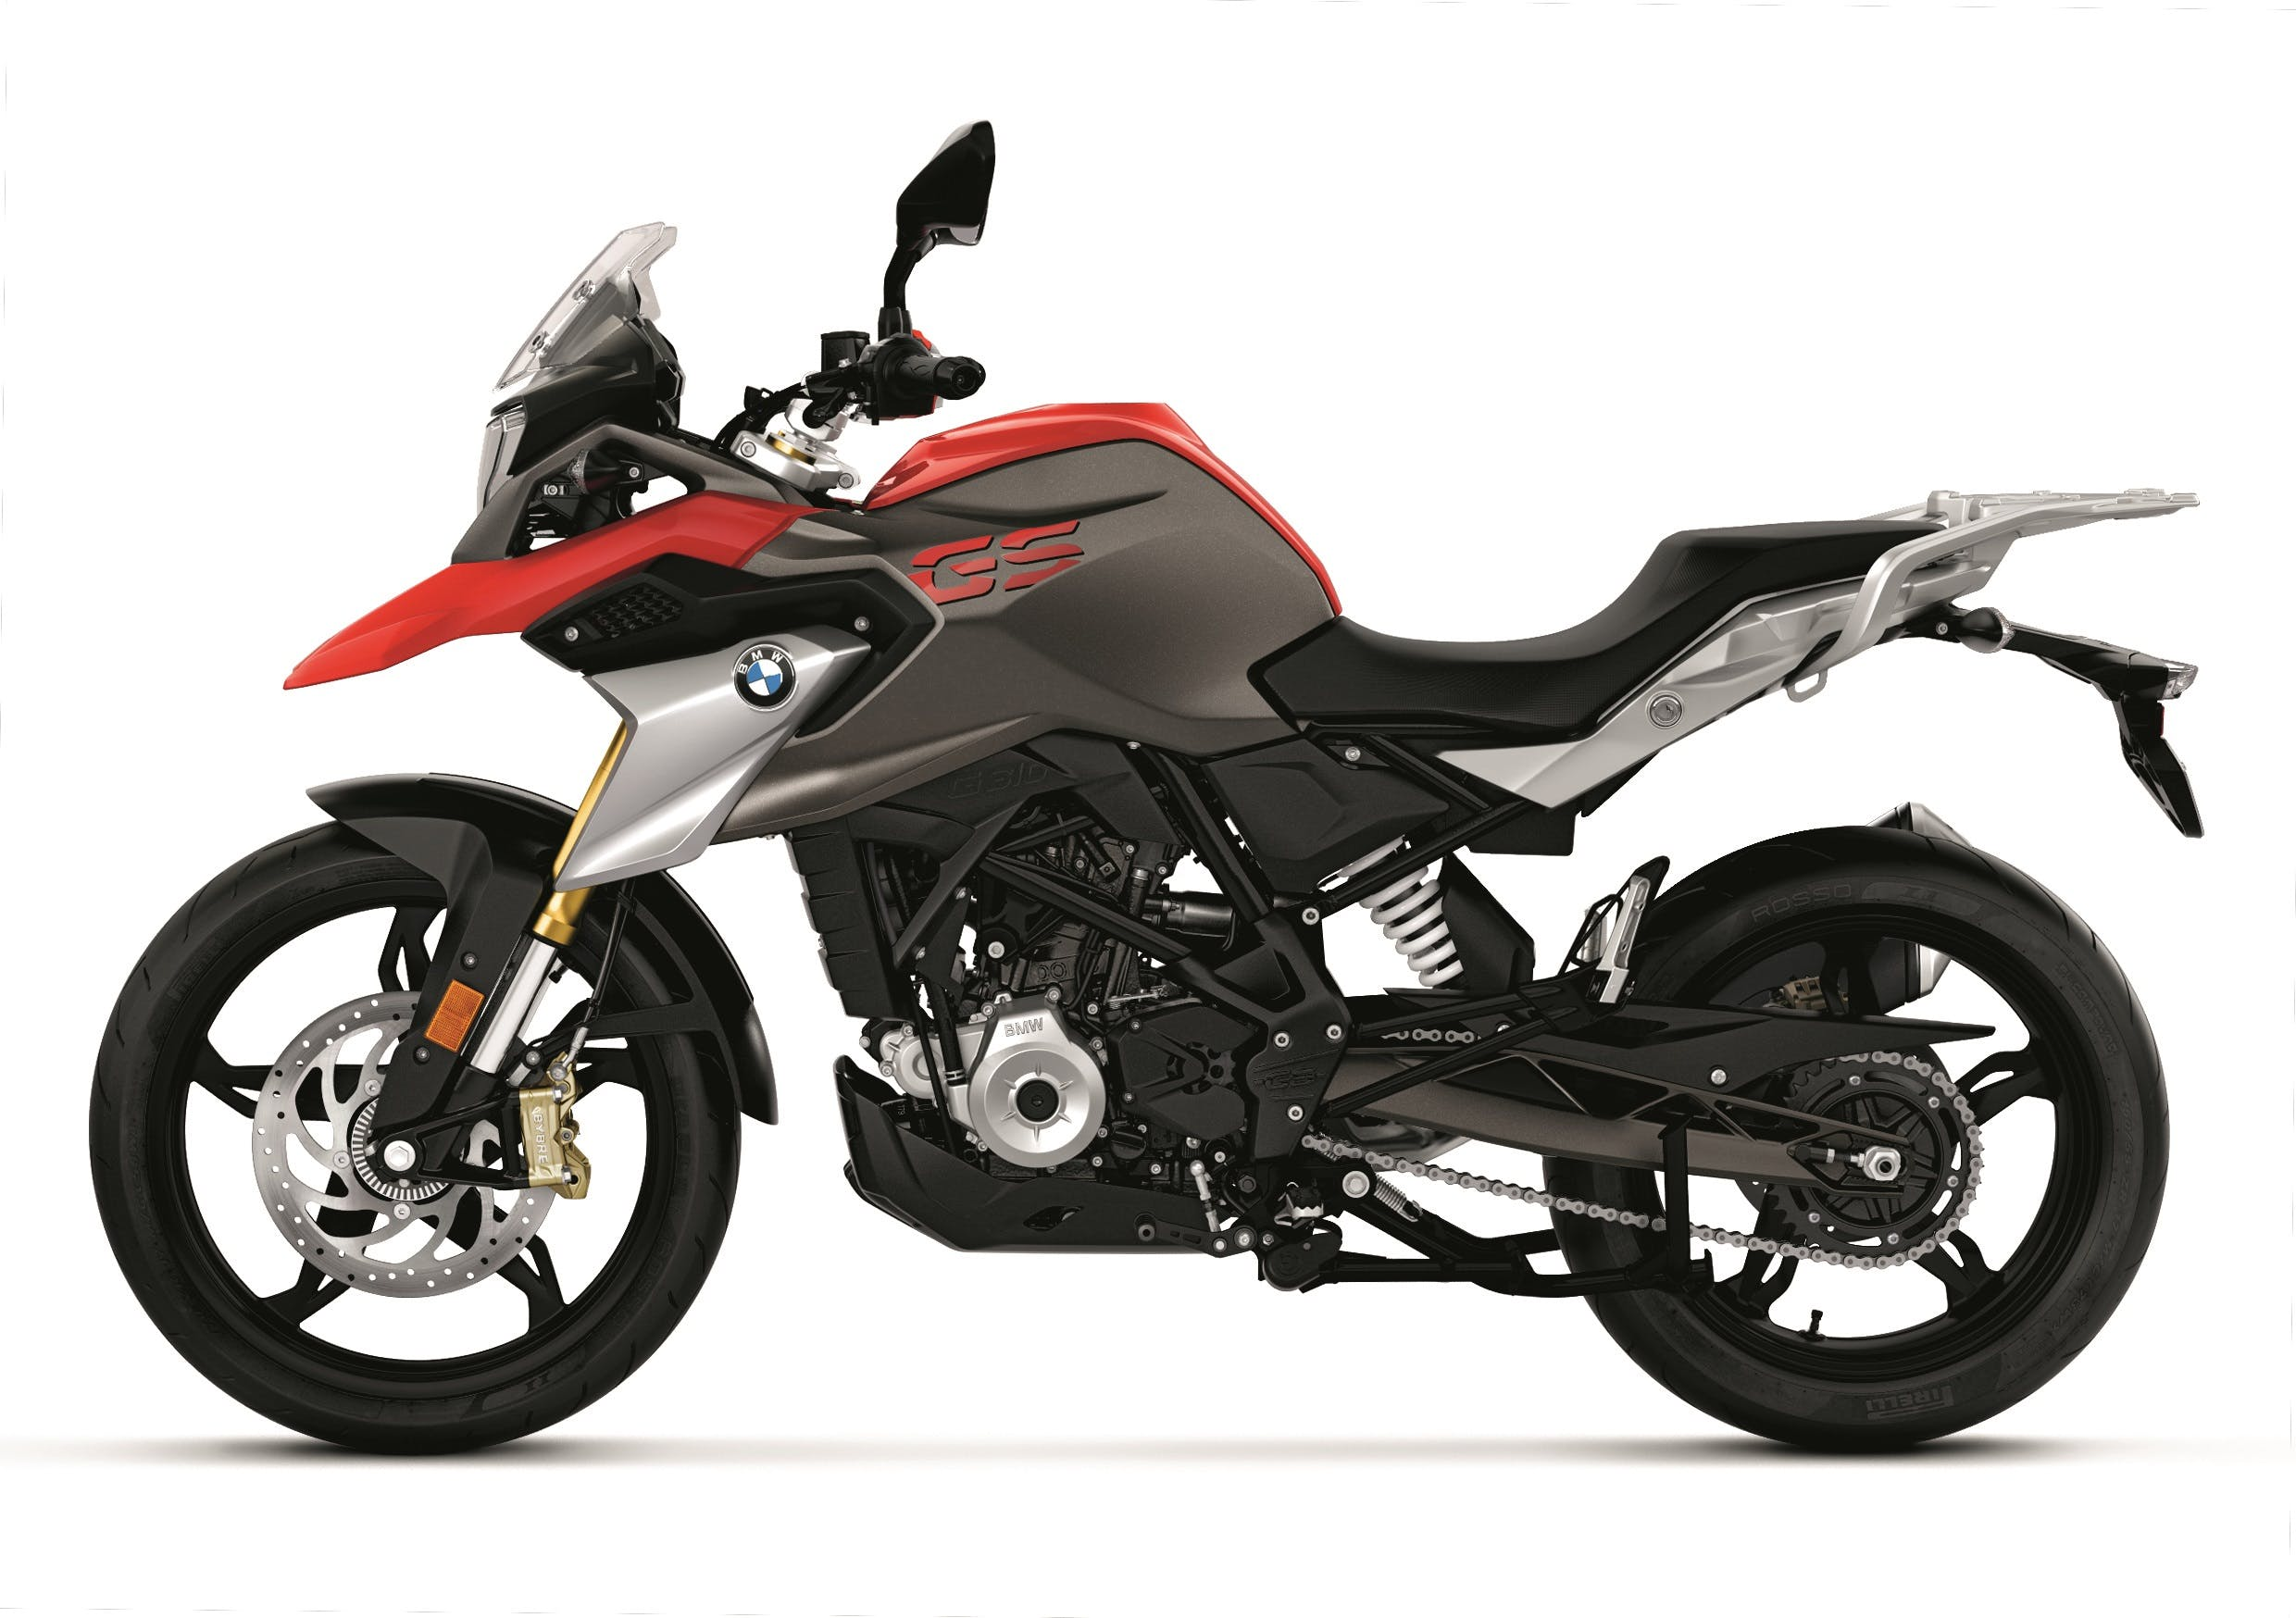 BMW G 310 GS in racing red colour